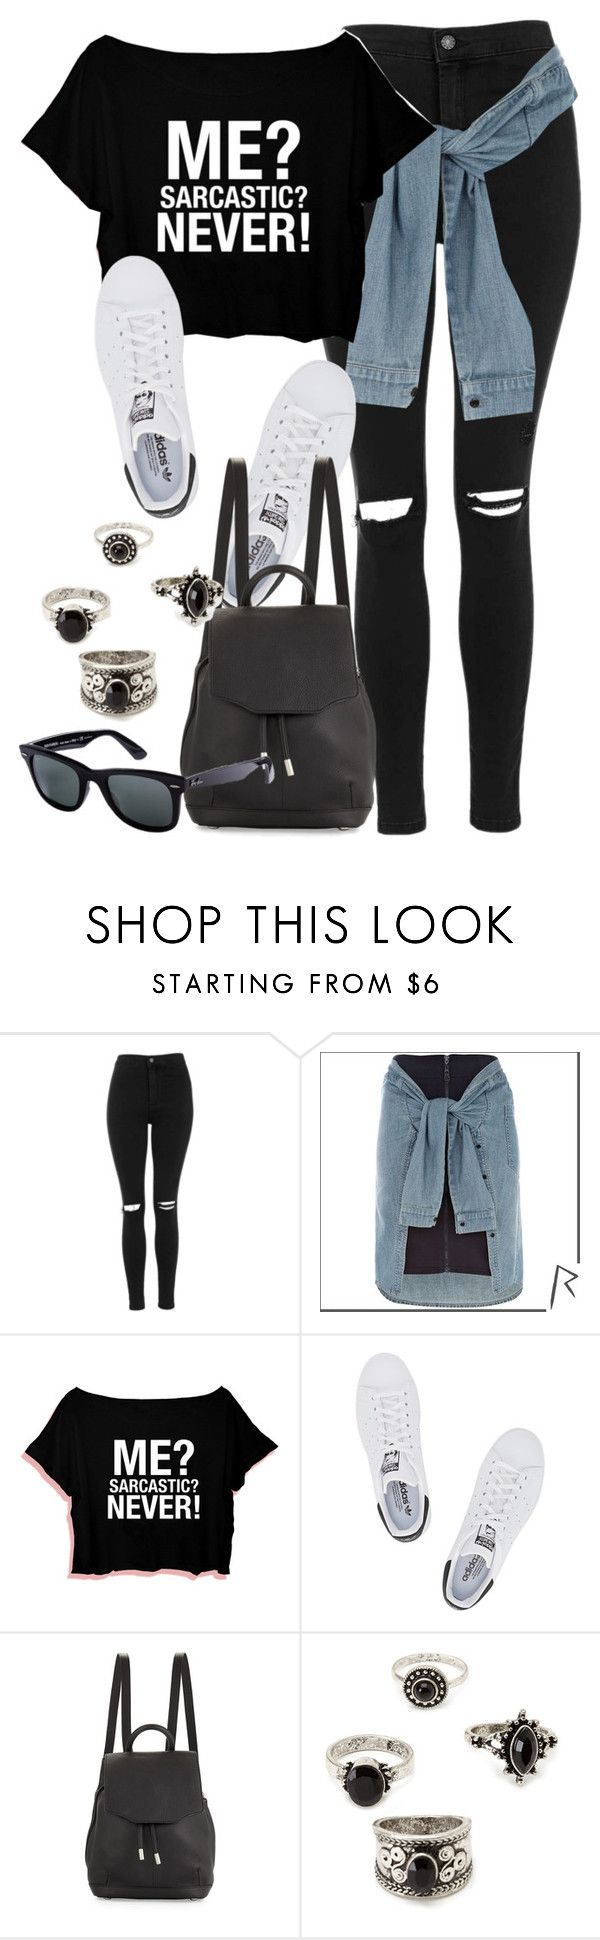 """""""Style #10209"""" by vany-alvarado ❤ liked on Polyvore featuring Topshop, River Island, adidas Originals, rag & bone, Forever 21 and Ray-Ban"""